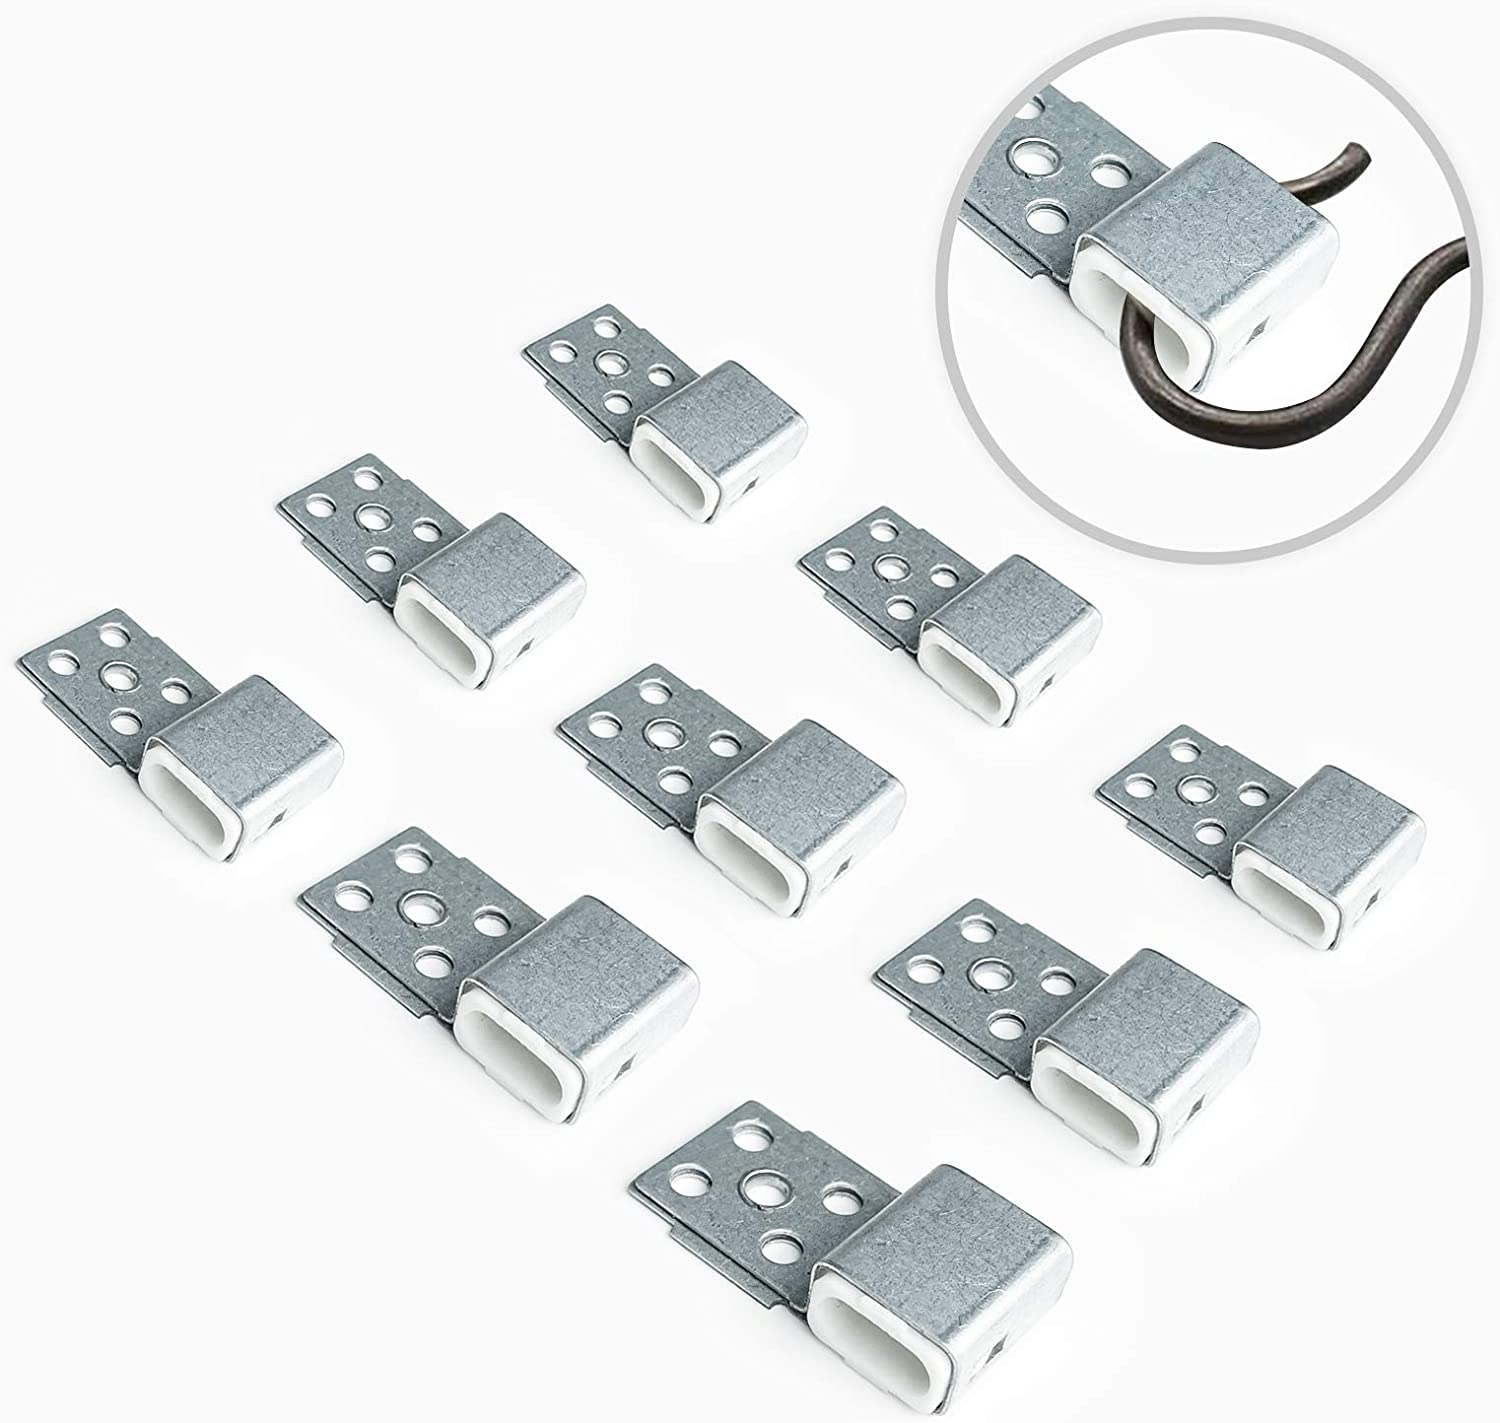 Tuplip Fe Couch Spring Repair Kit(12pcs), Alloy Spring Buckle for Sofa/Chair/Couch/Bed Spring Clips Repair Parts, Upgrade Quality